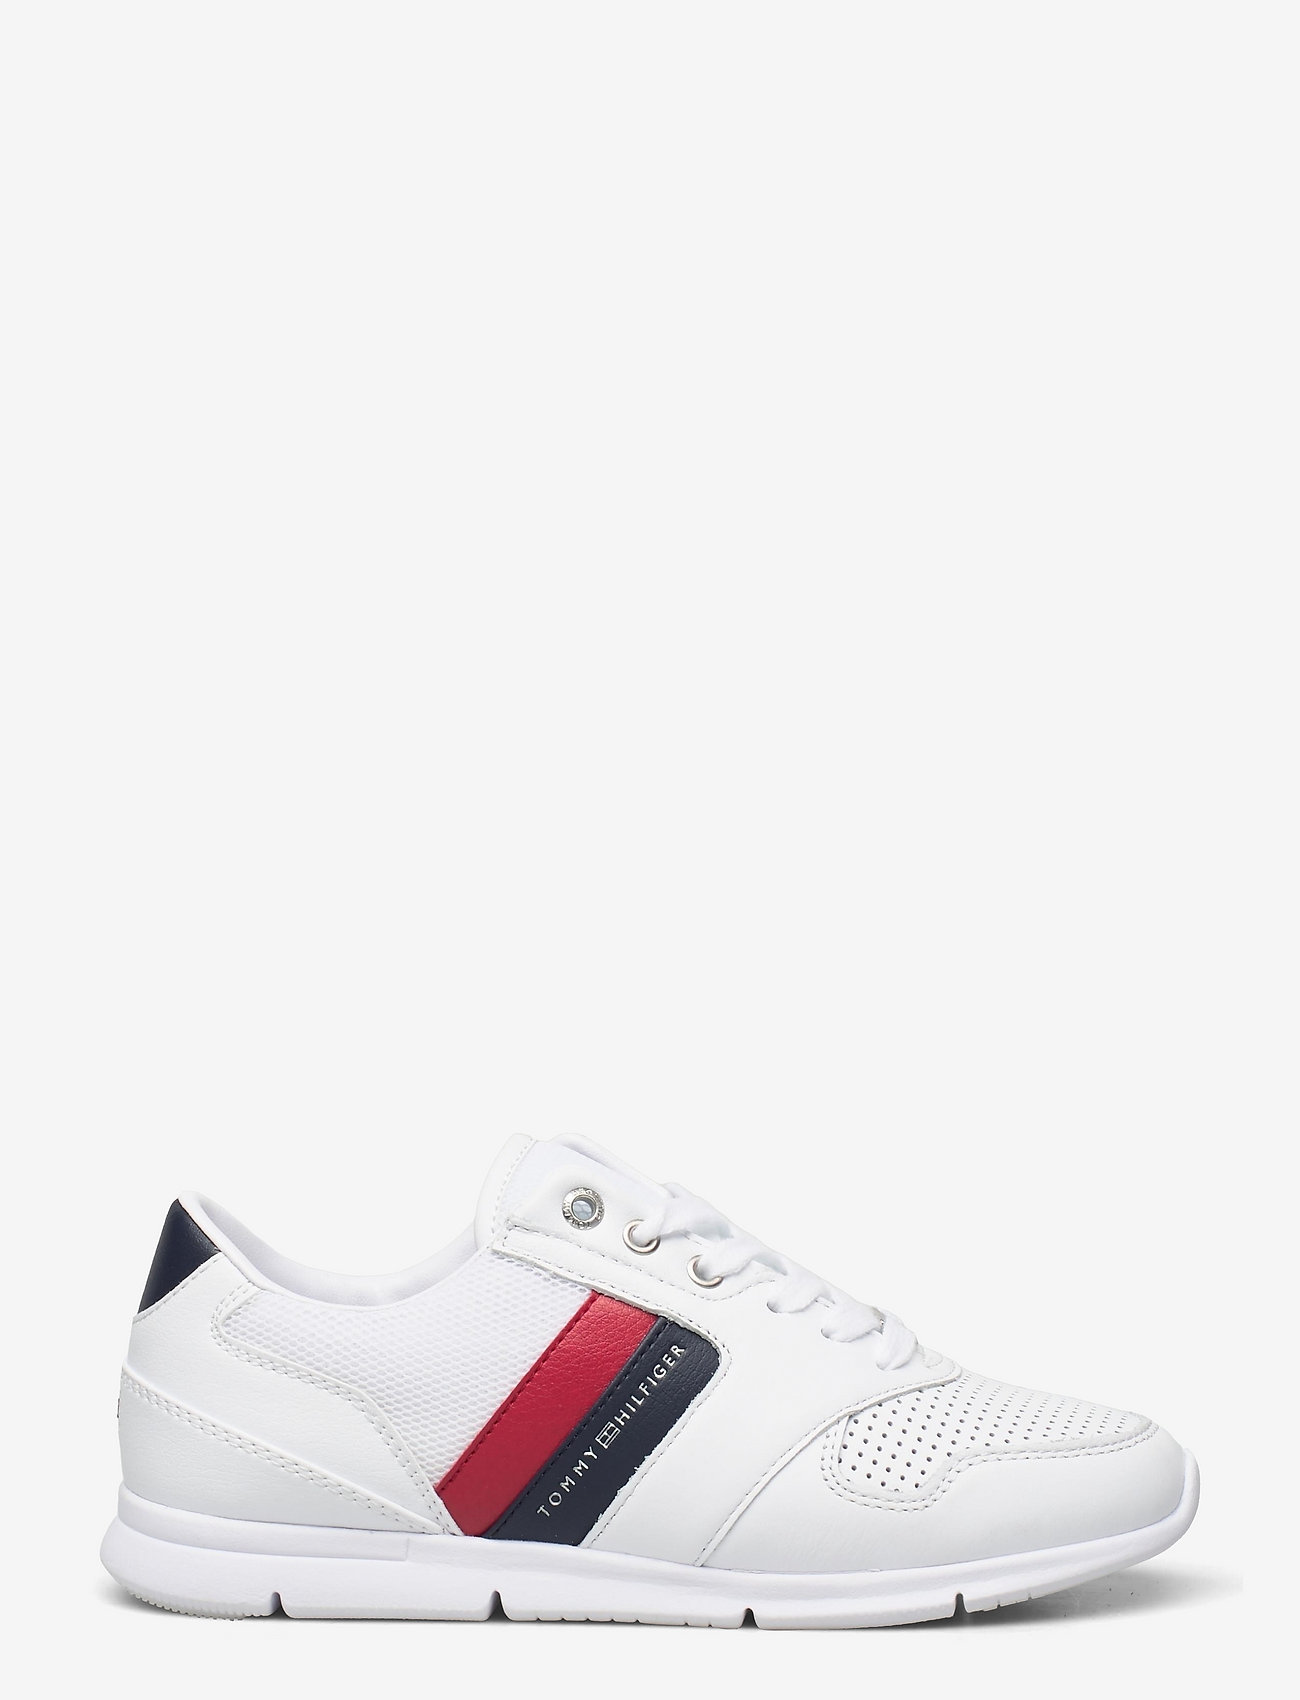 Tommy Hilfiger - LIGHTWEIGHT LEATHER SNEAKER - low top sneakers - rwb - 1